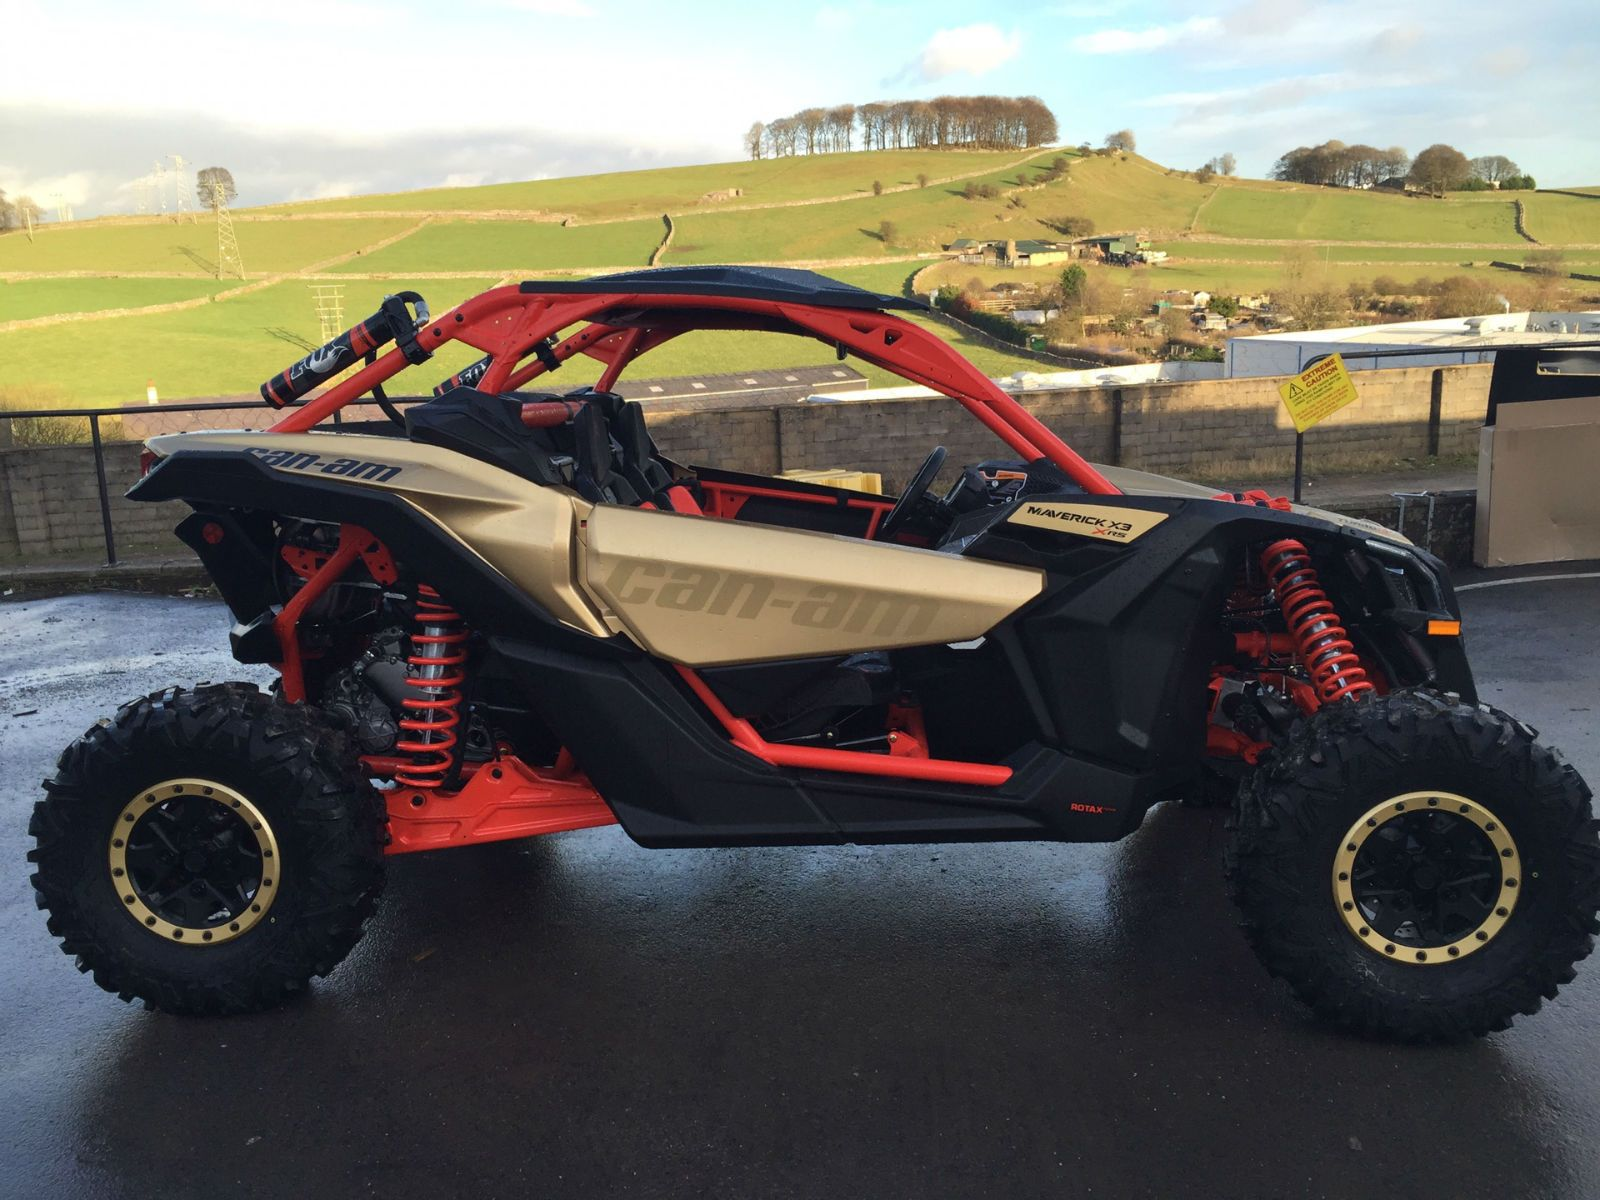 new can am maverick x3 x rs 2017 model road legal off road vehicle buggy ssv ebay cars. Black Bedroom Furniture Sets. Home Design Ideas